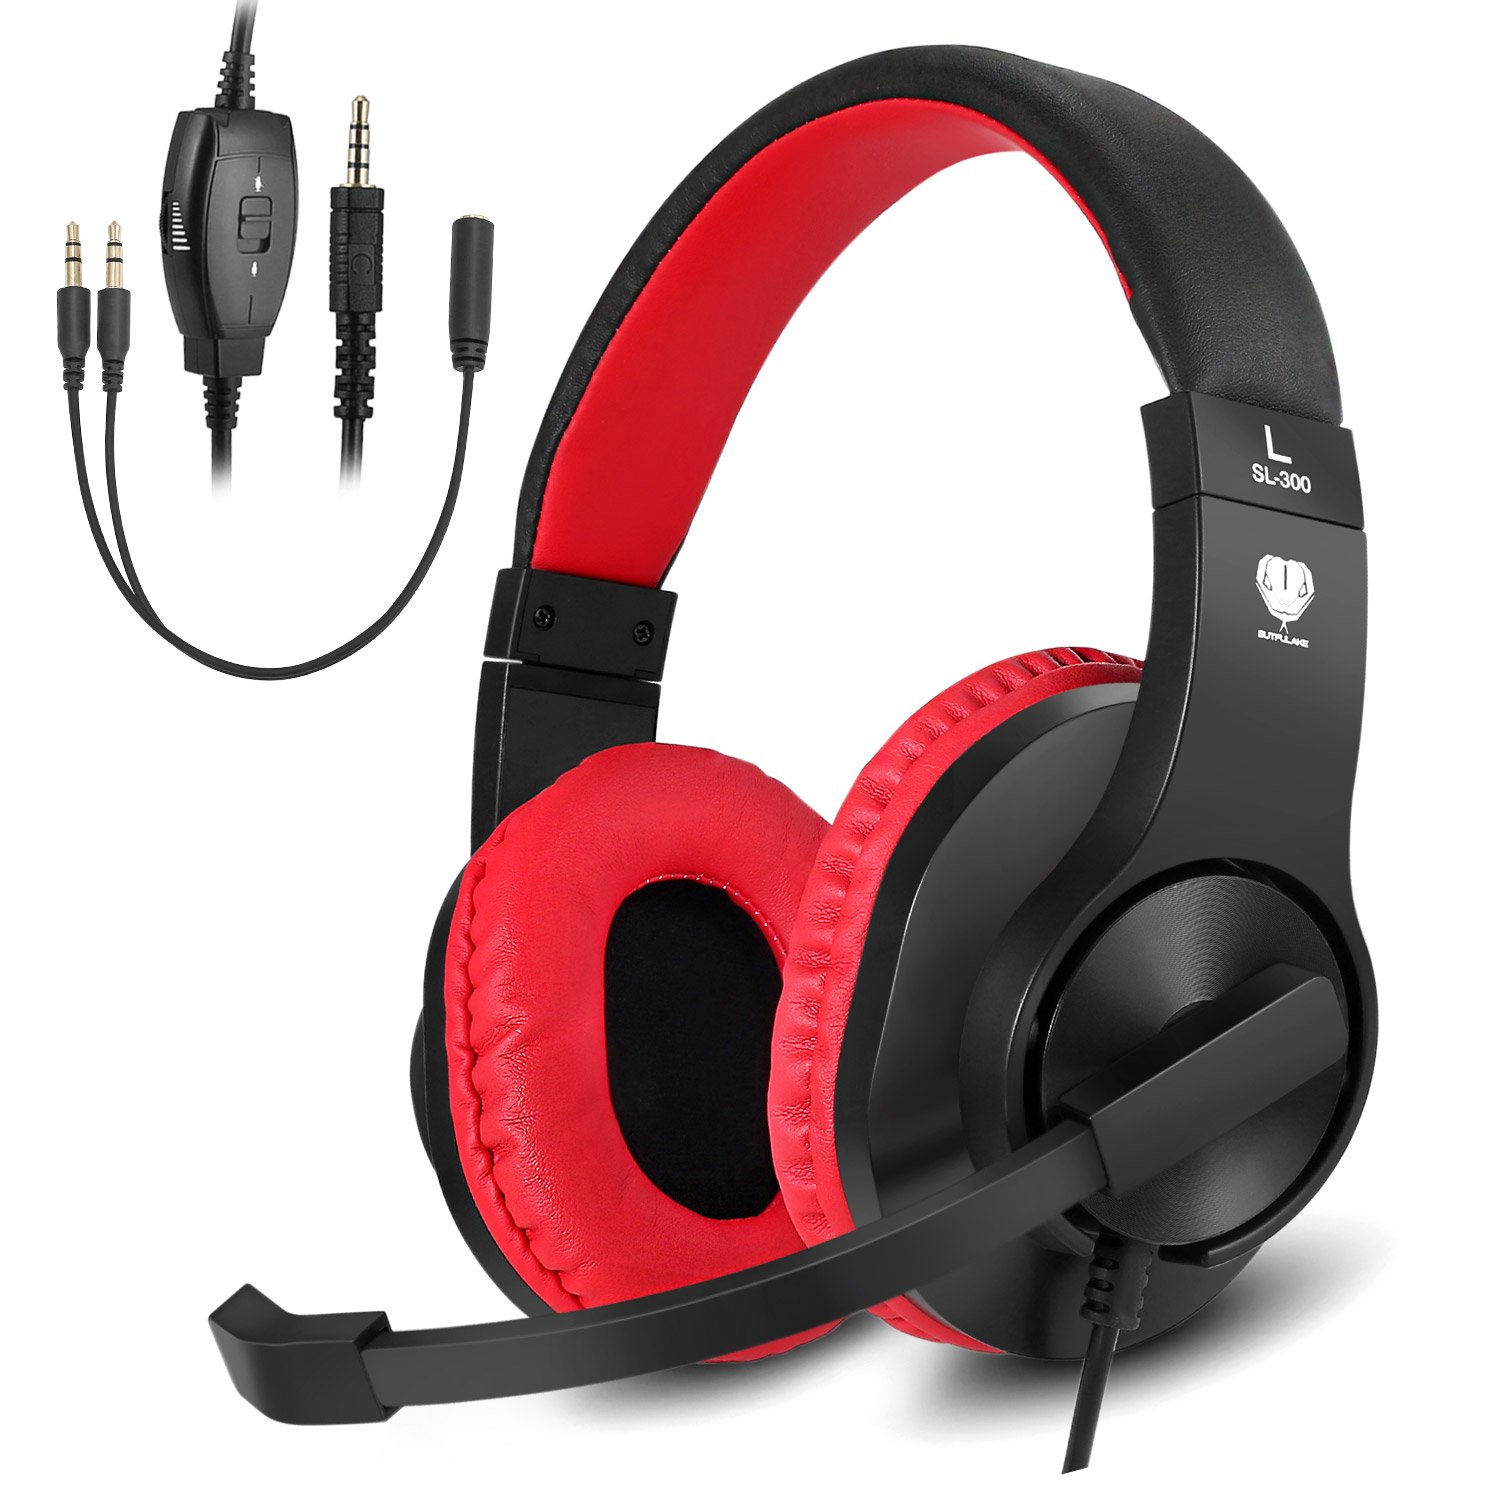 BUTFULAKE Stereo Gaming Headset for PS4, Xbox One, Nintendo Switch, Adjustable Earmuffs and OVER-ALL Noise Isolation, Lightweight 3.5mm Wired Volume Control with Mic for Laptop PC (Black-red) by BUTFULAKE